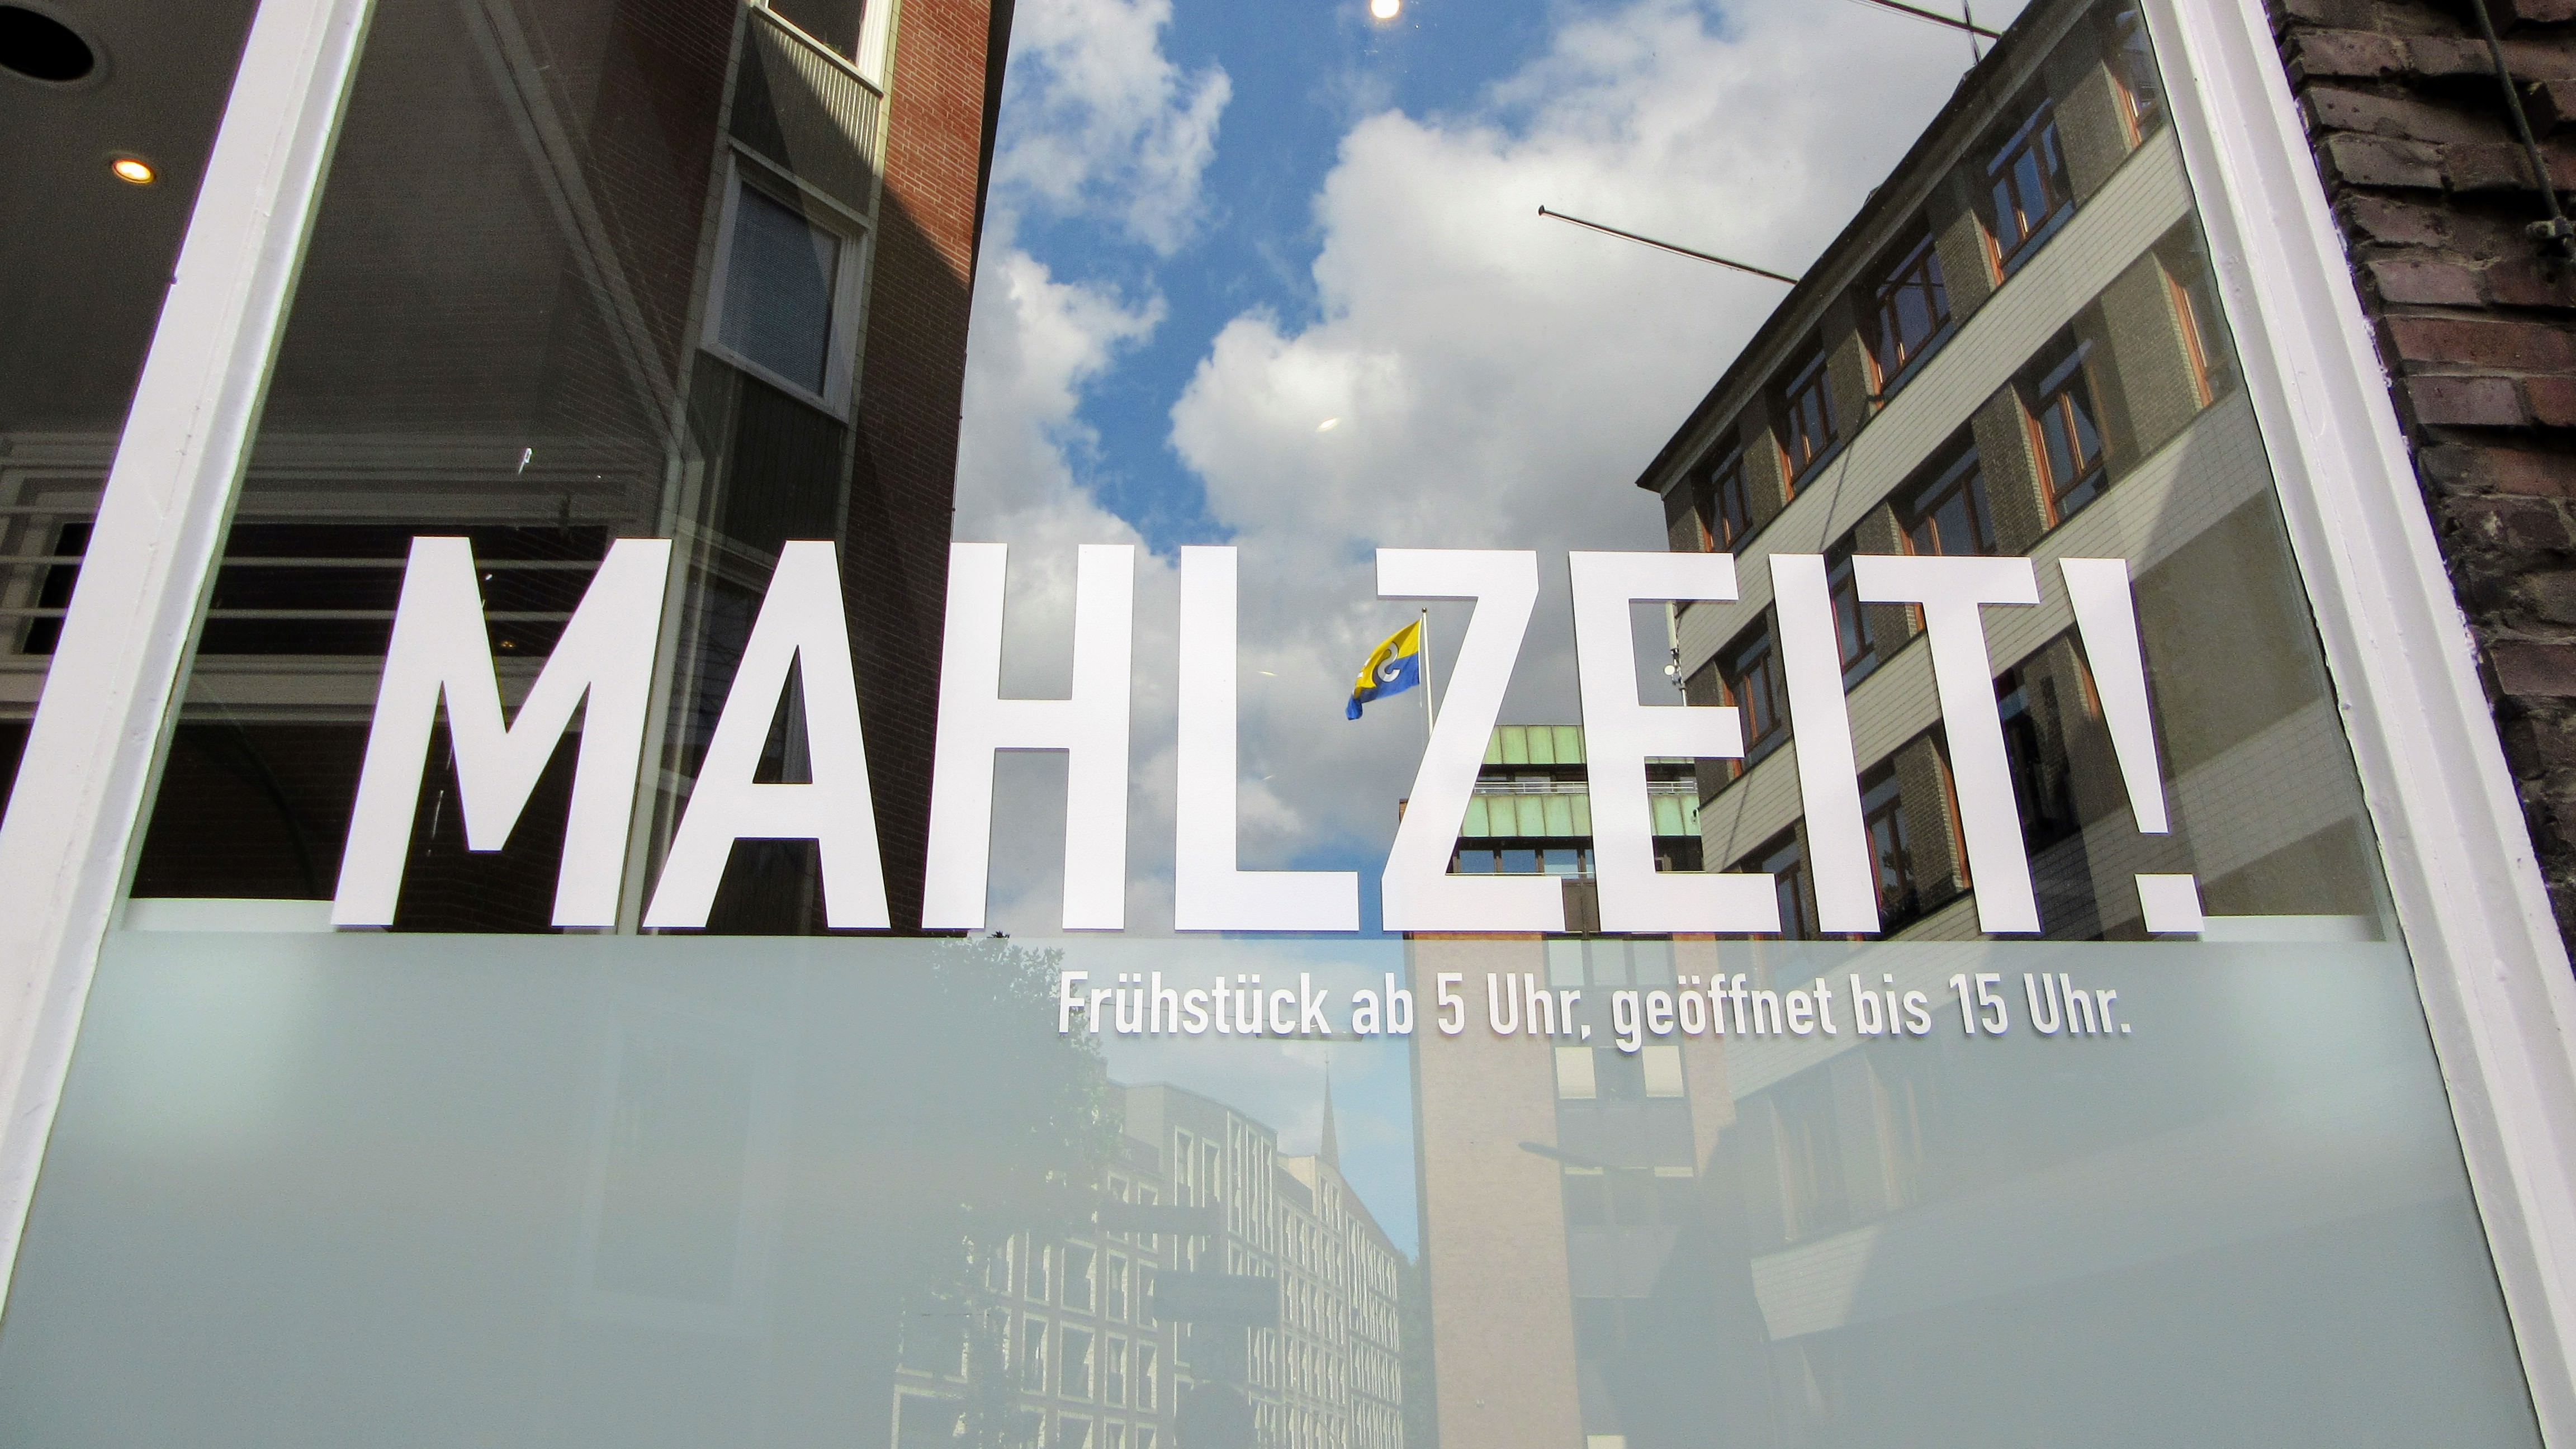 Mahlzeit sign. | Missing Germany